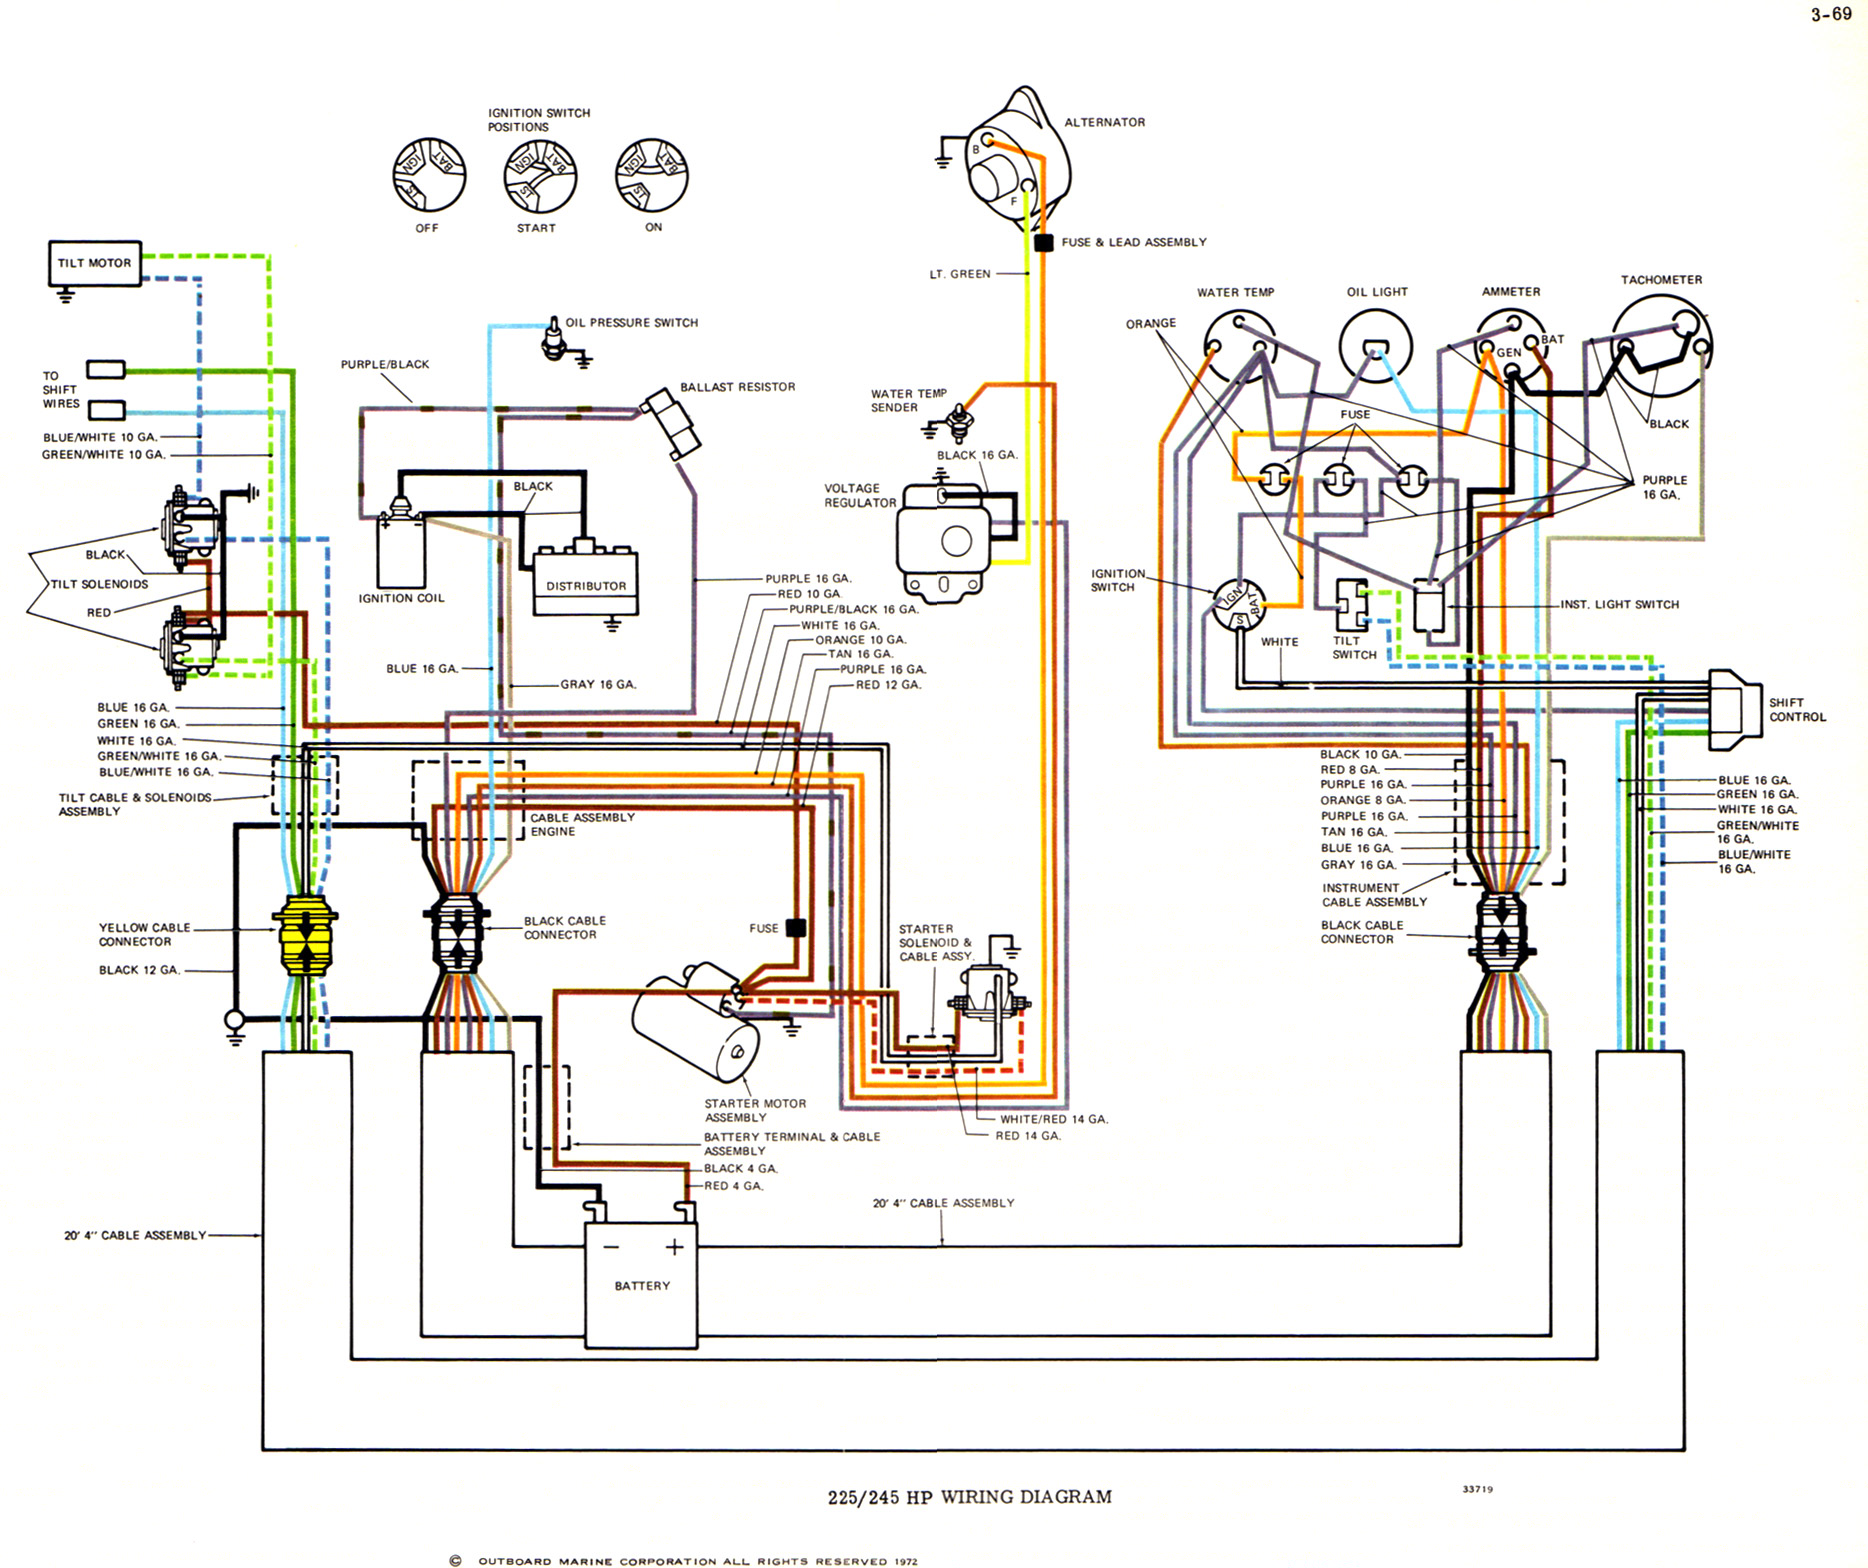 73_OMC_V8_all_big omc boat technical info marine wiring diagrams at webbmarketing.co